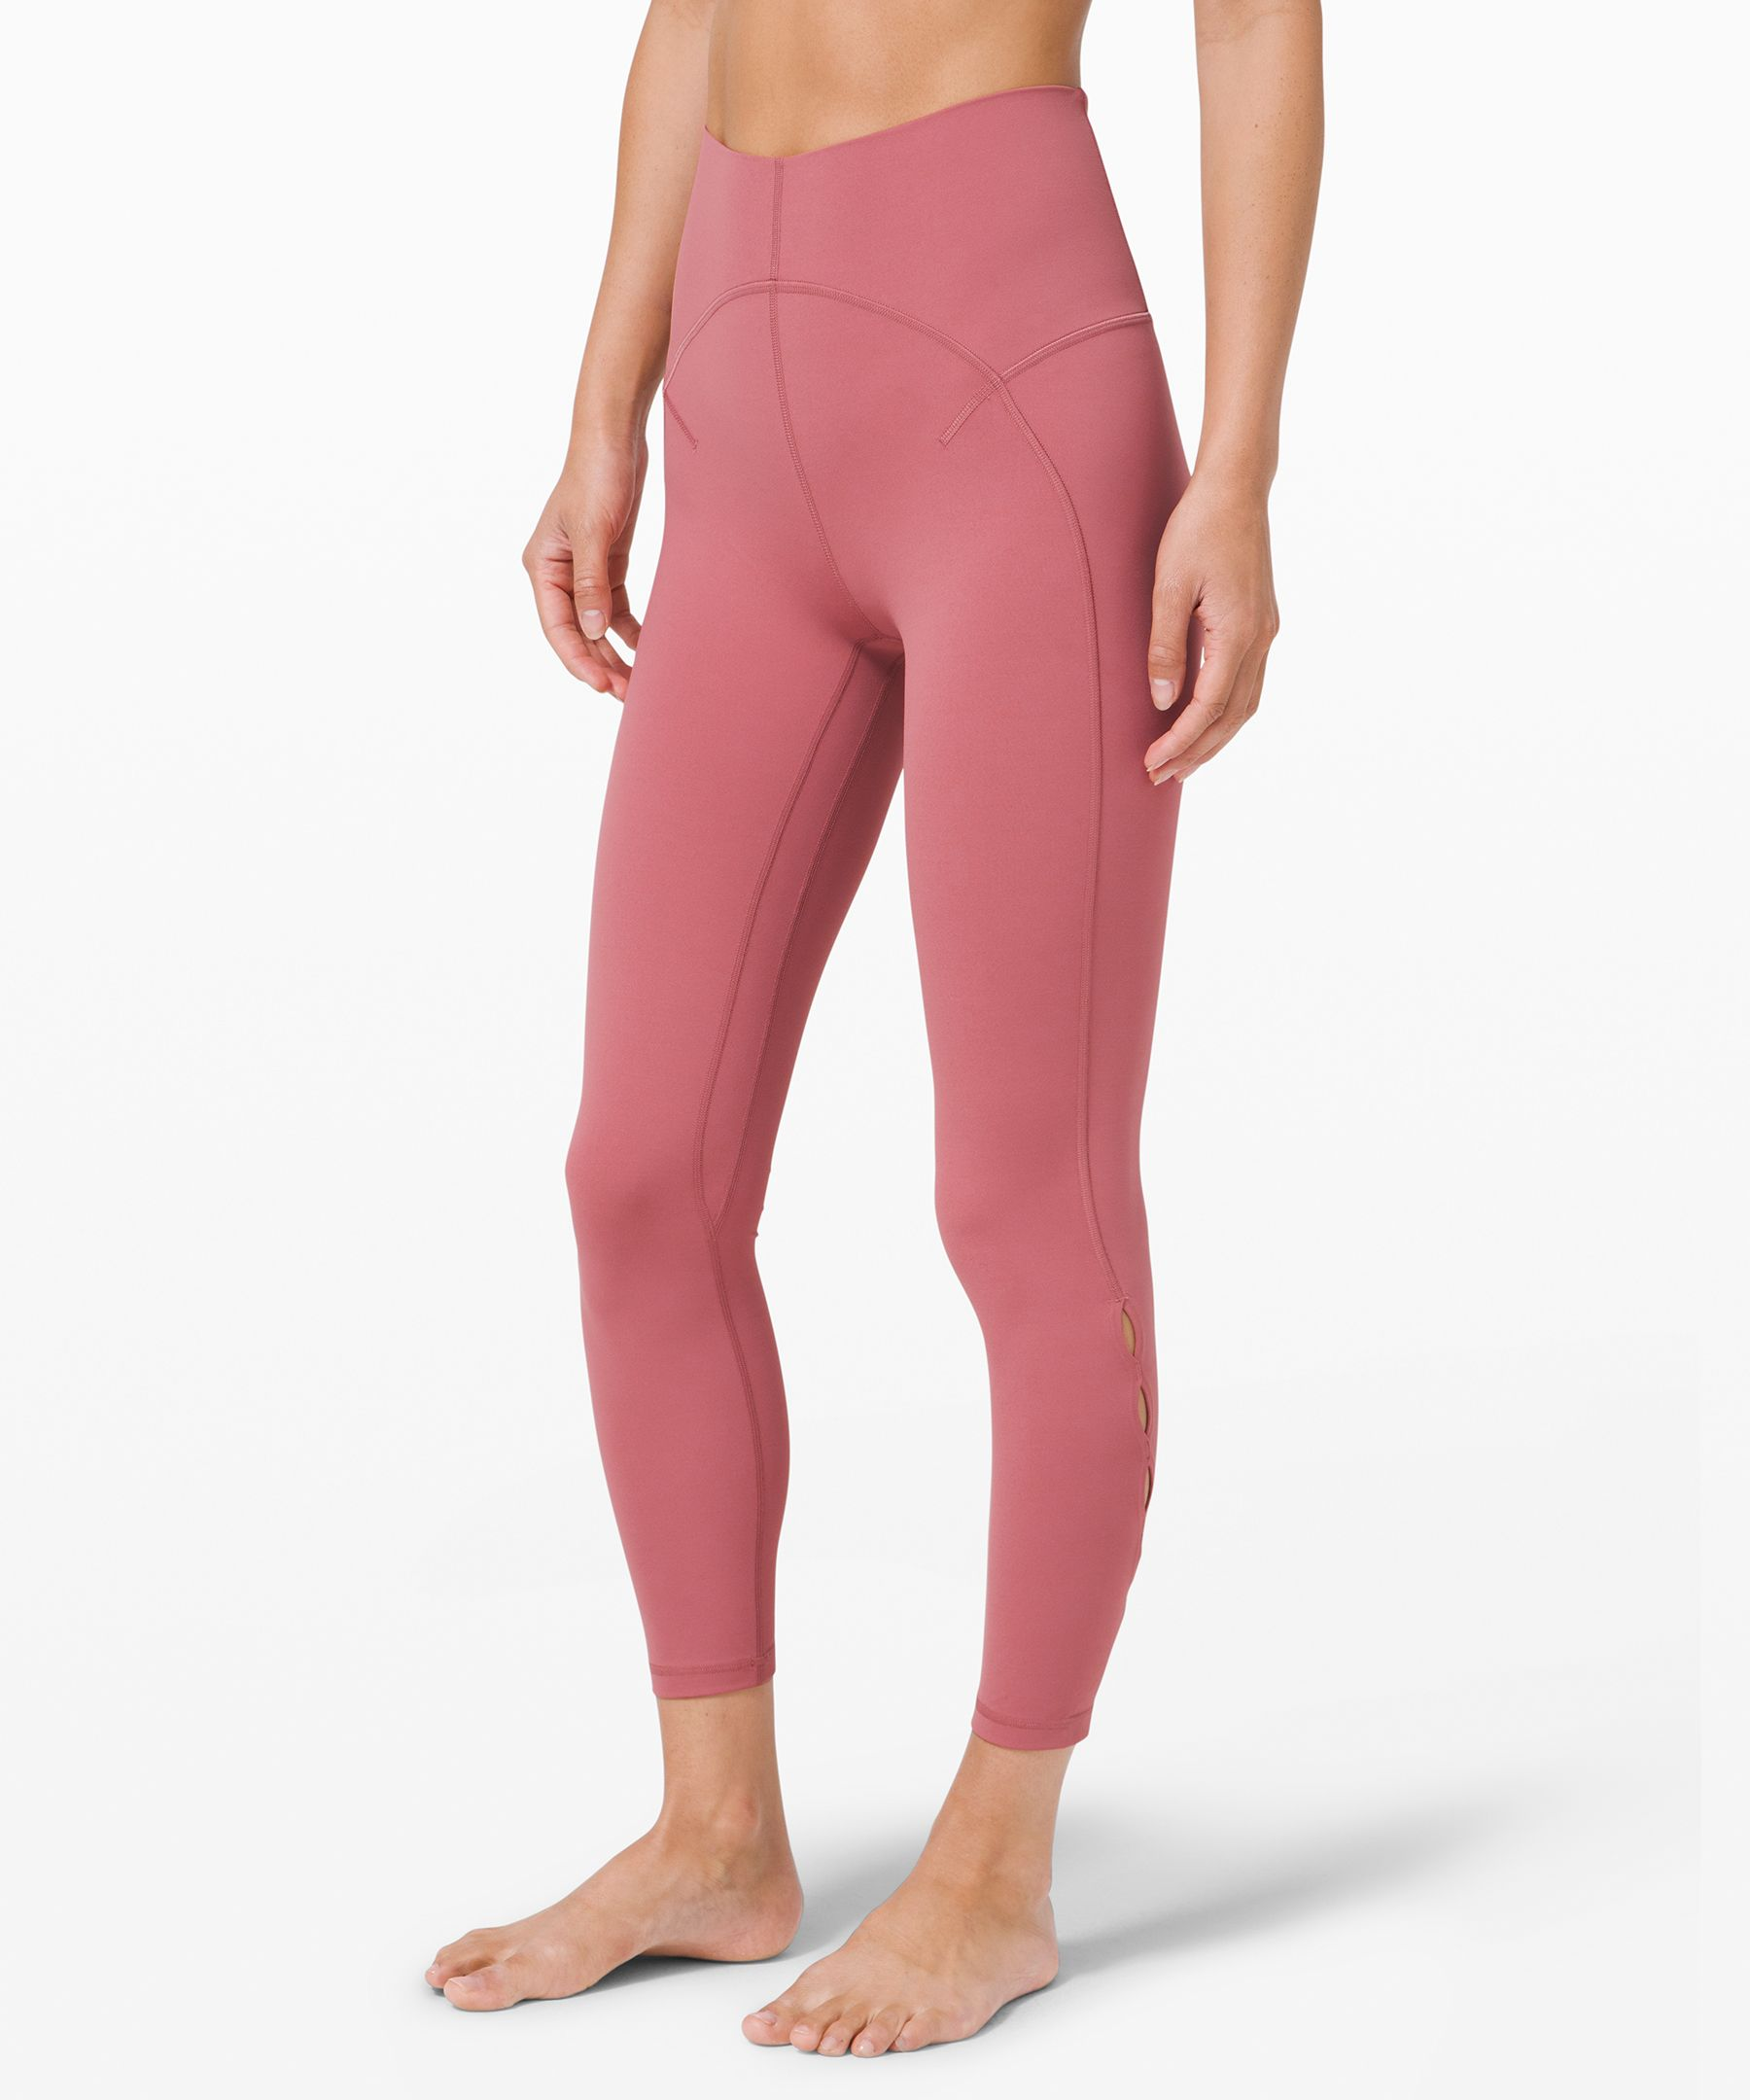 Feel limitless. Made with the same buttery-soft Nulu™ fabric as the Align Pant, these yoga tights give you weightless coverage for total practice freedom